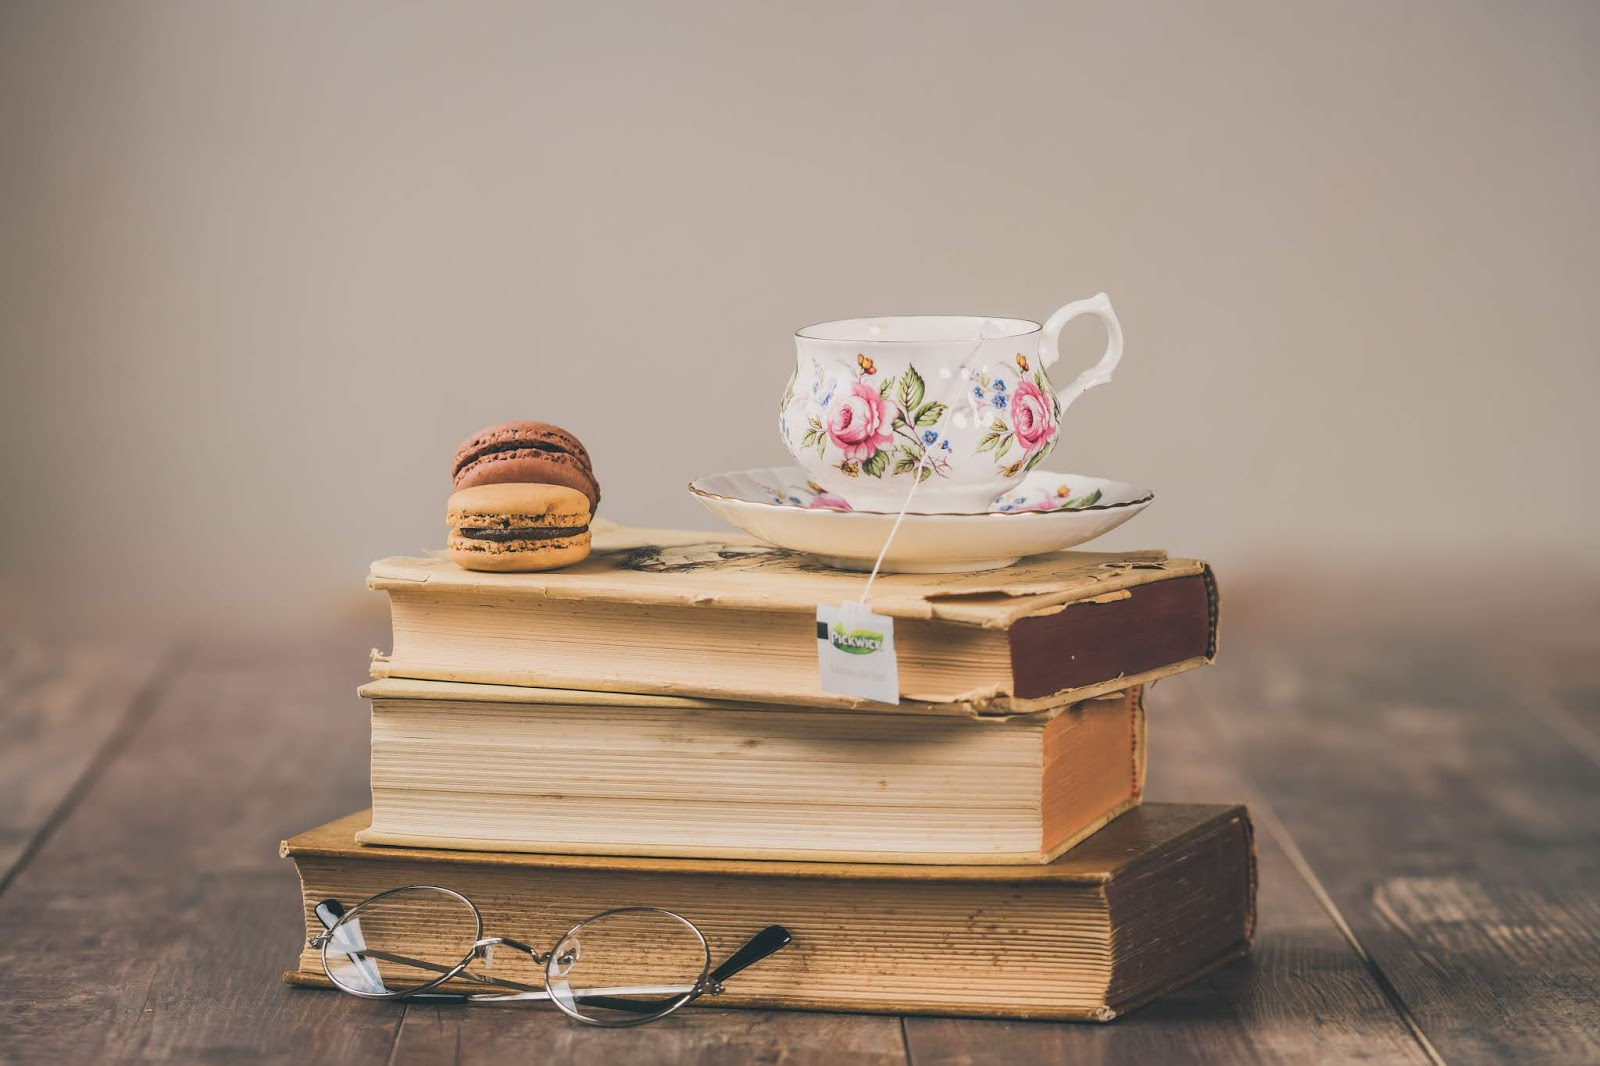 three adult ballet books macarons glasses teacup